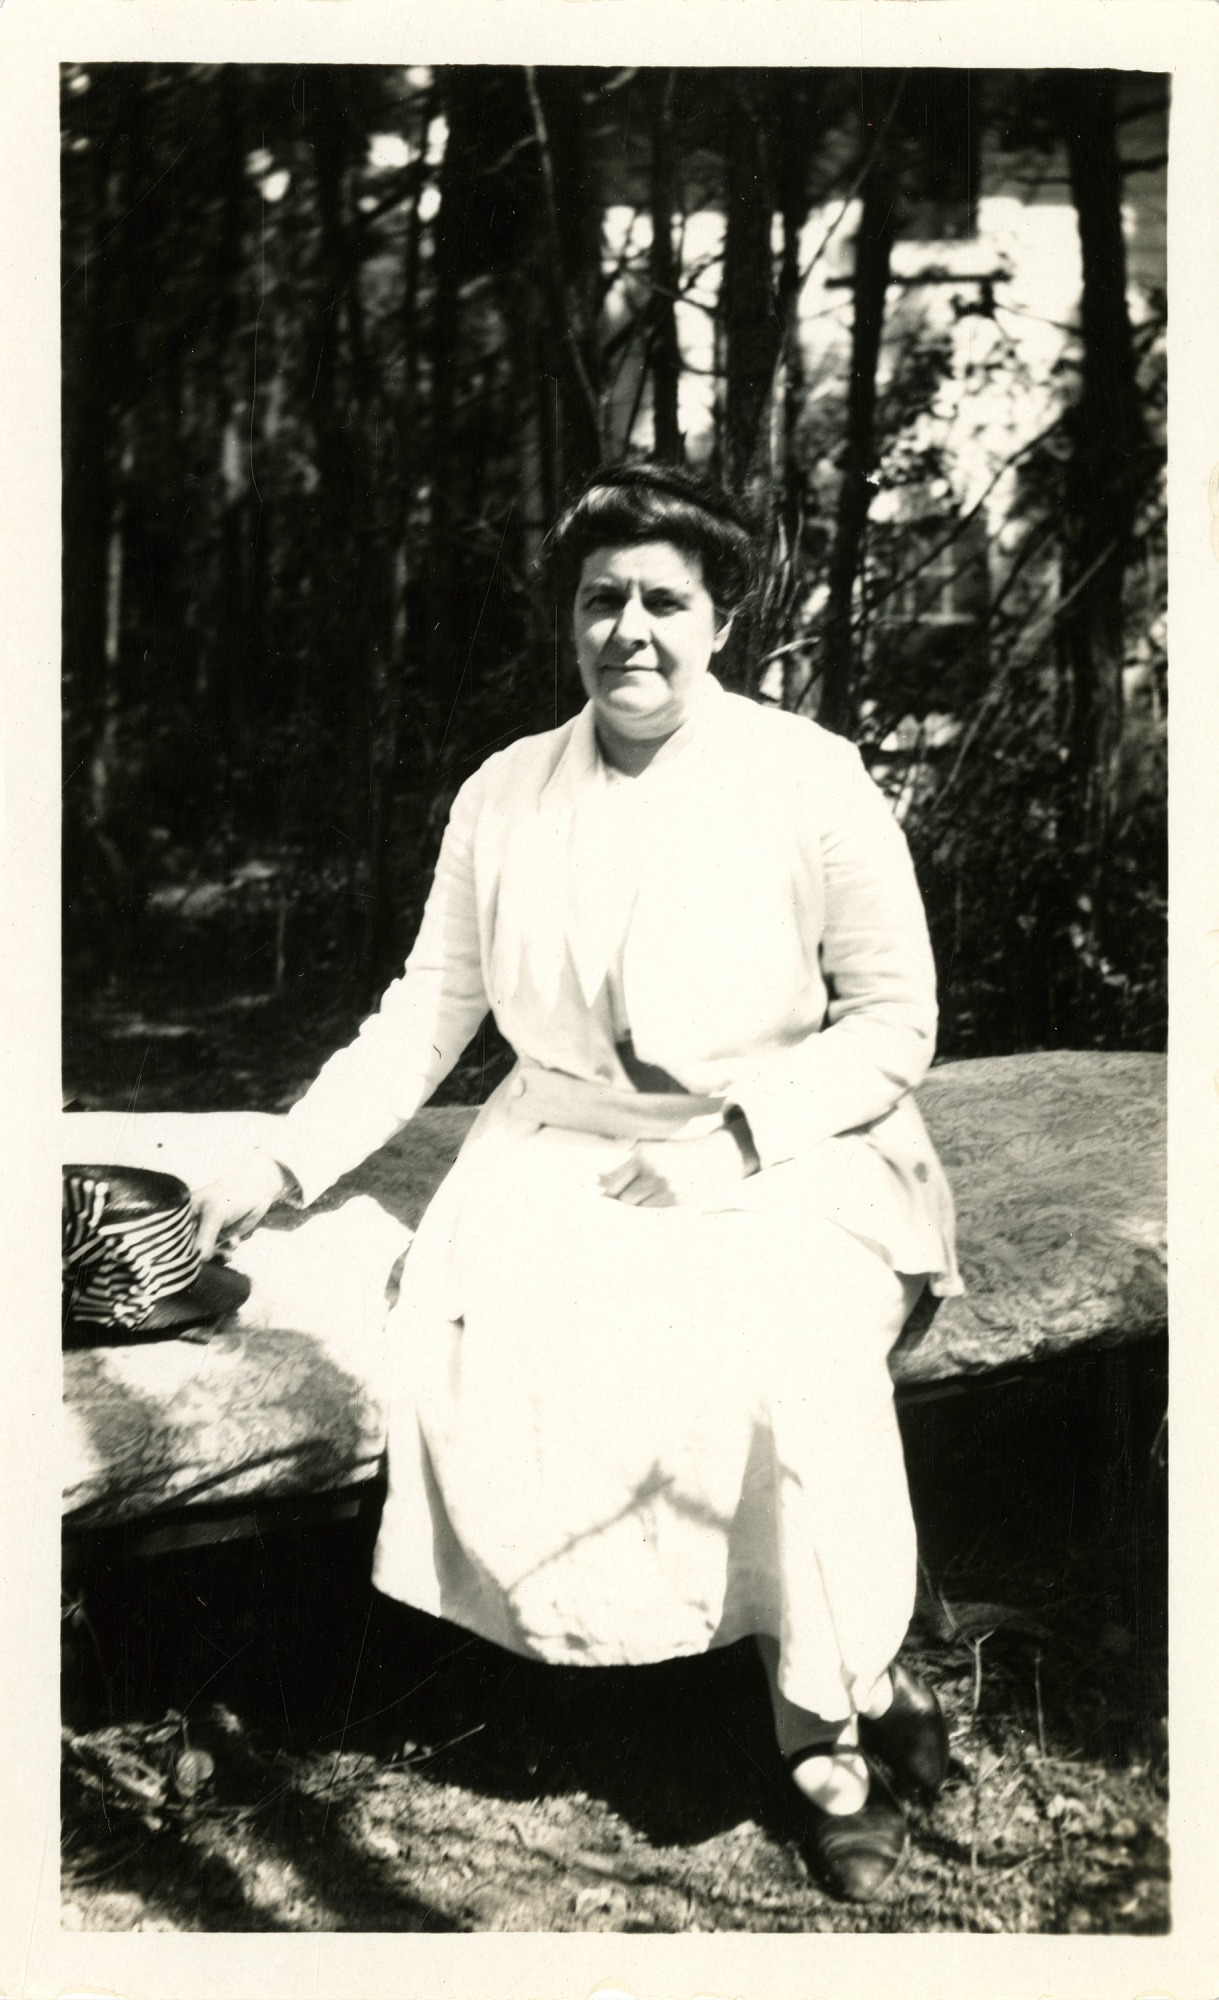 Florence Peebles (1874-1956), Smithsonian Institution Archives, SIA Acc. 90-105 [SIA2009-1445].